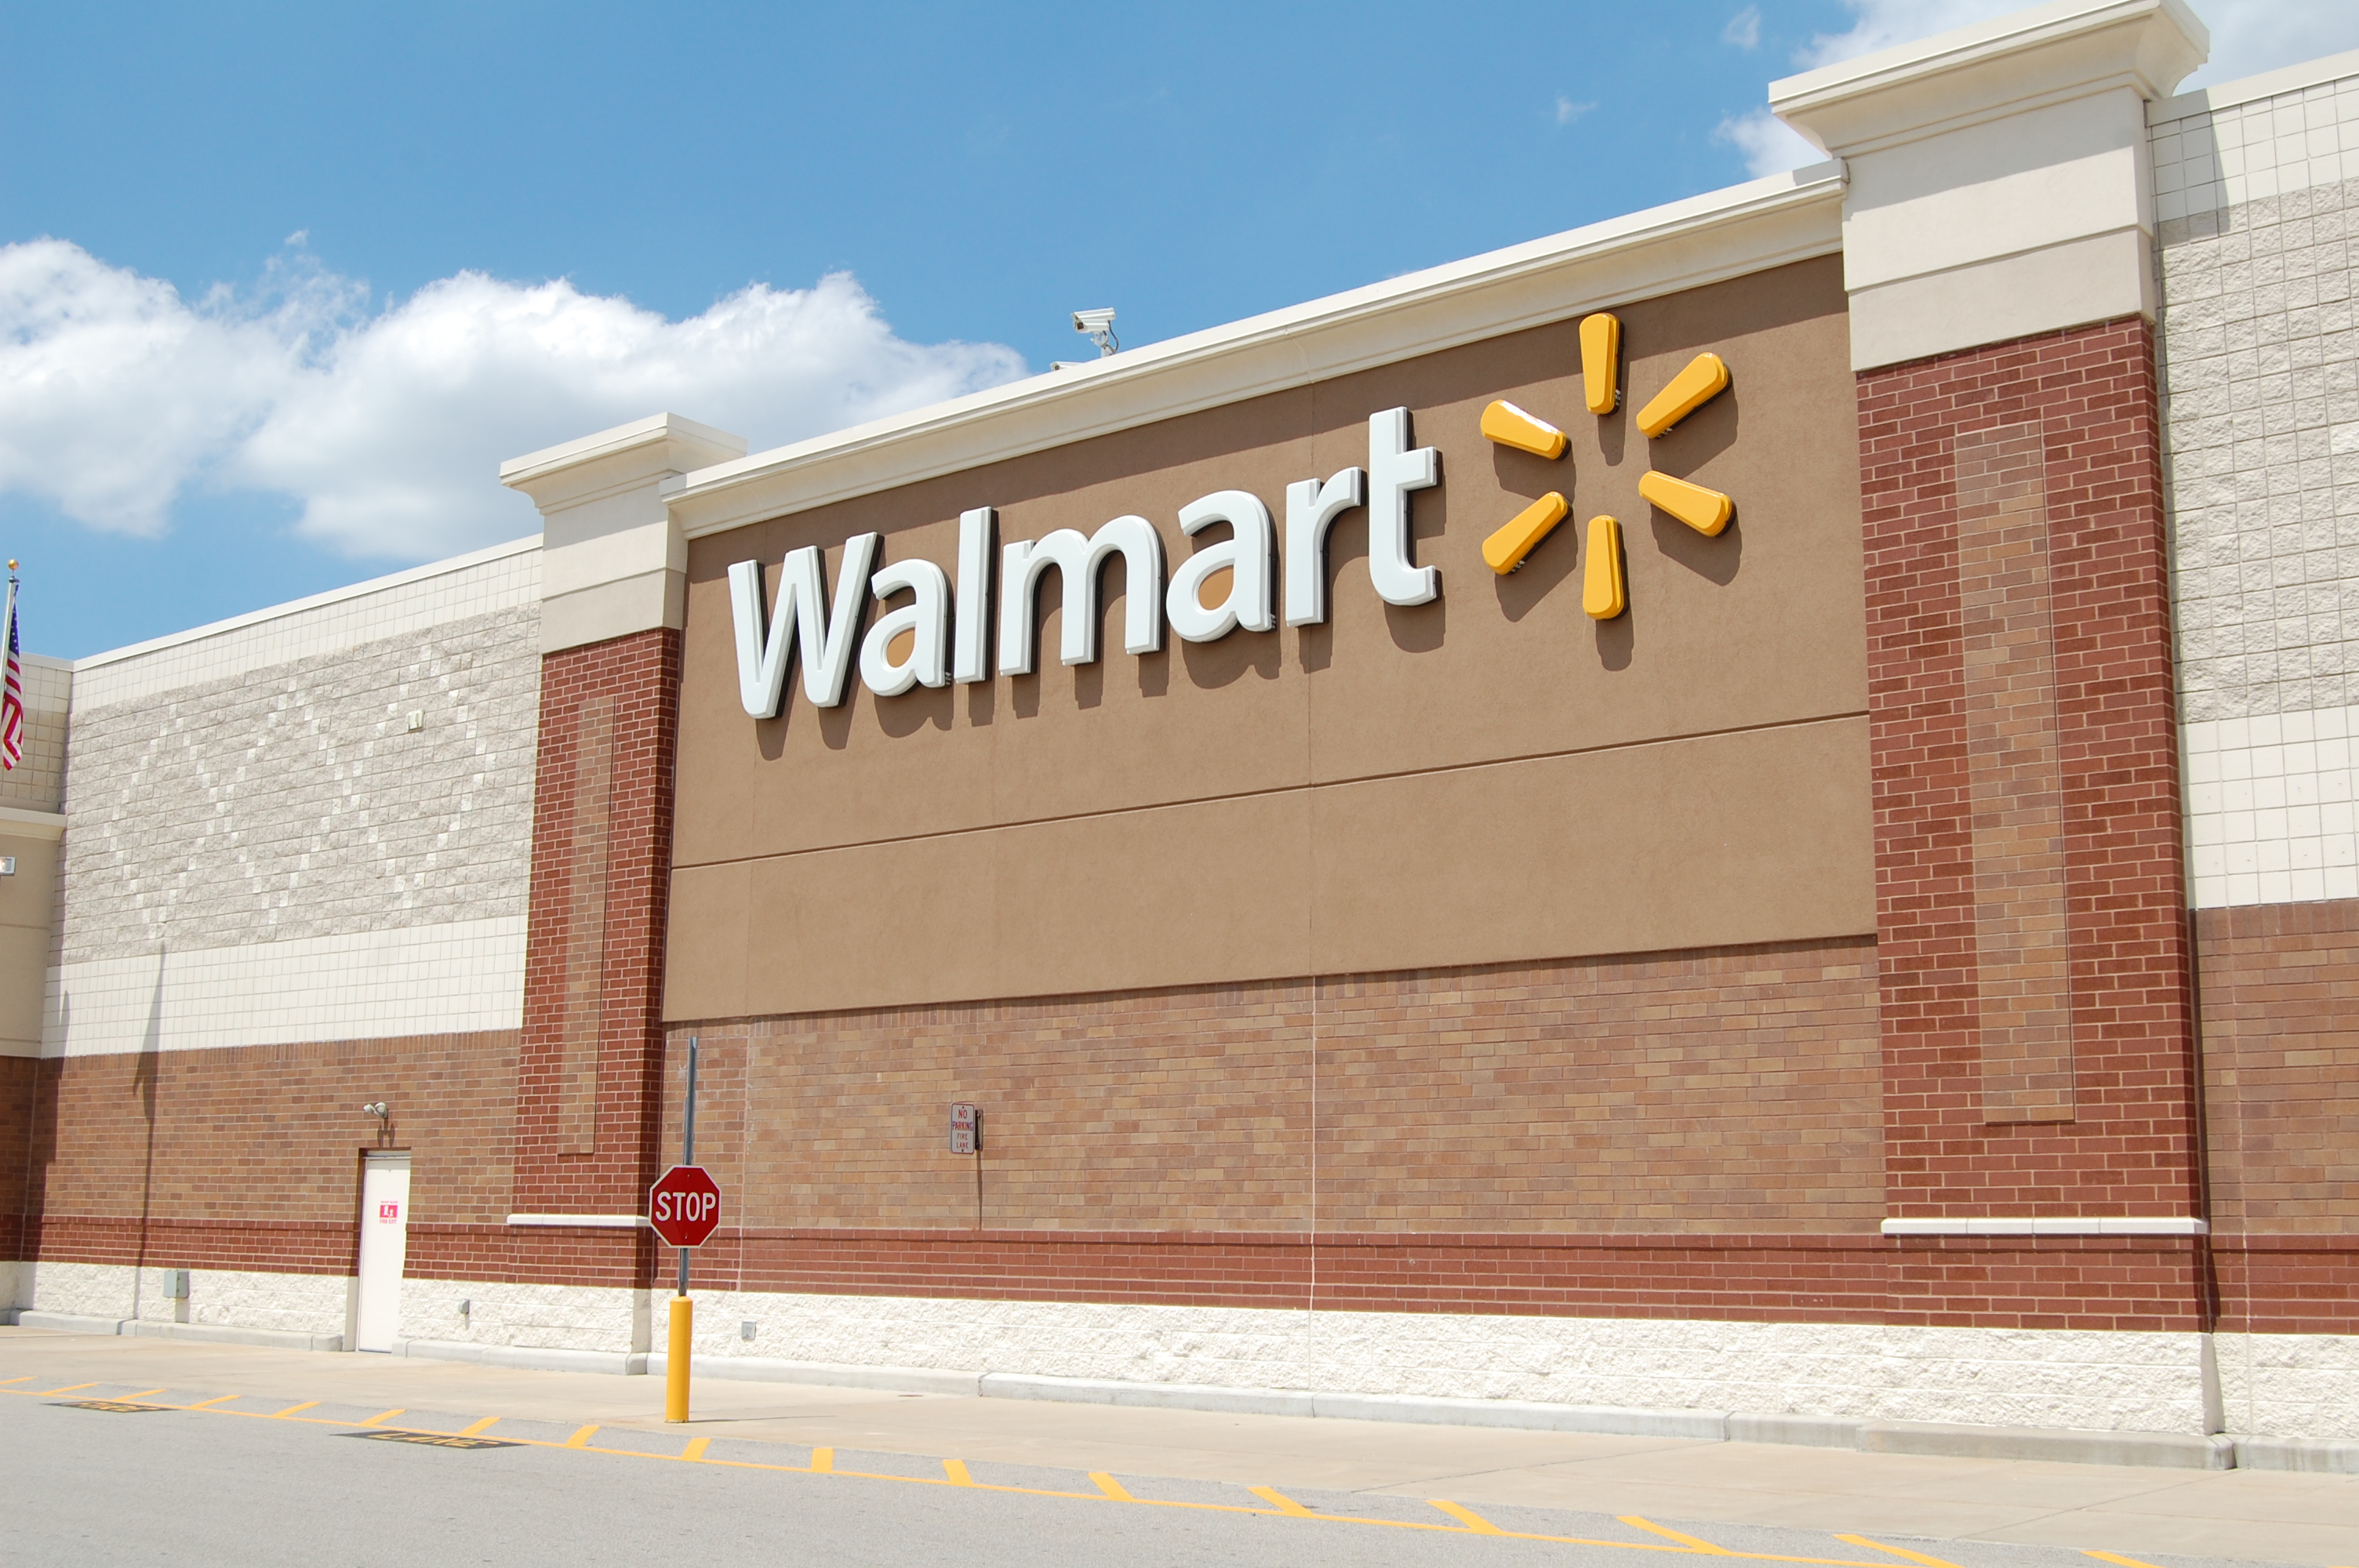 Winsome Our Local Walmart Shopping Walmart Baby Registry Sippy Cup Mom Walmart Baby Registry Freebies Walmart Baby Registry Canada baby Walmart Baby Registry